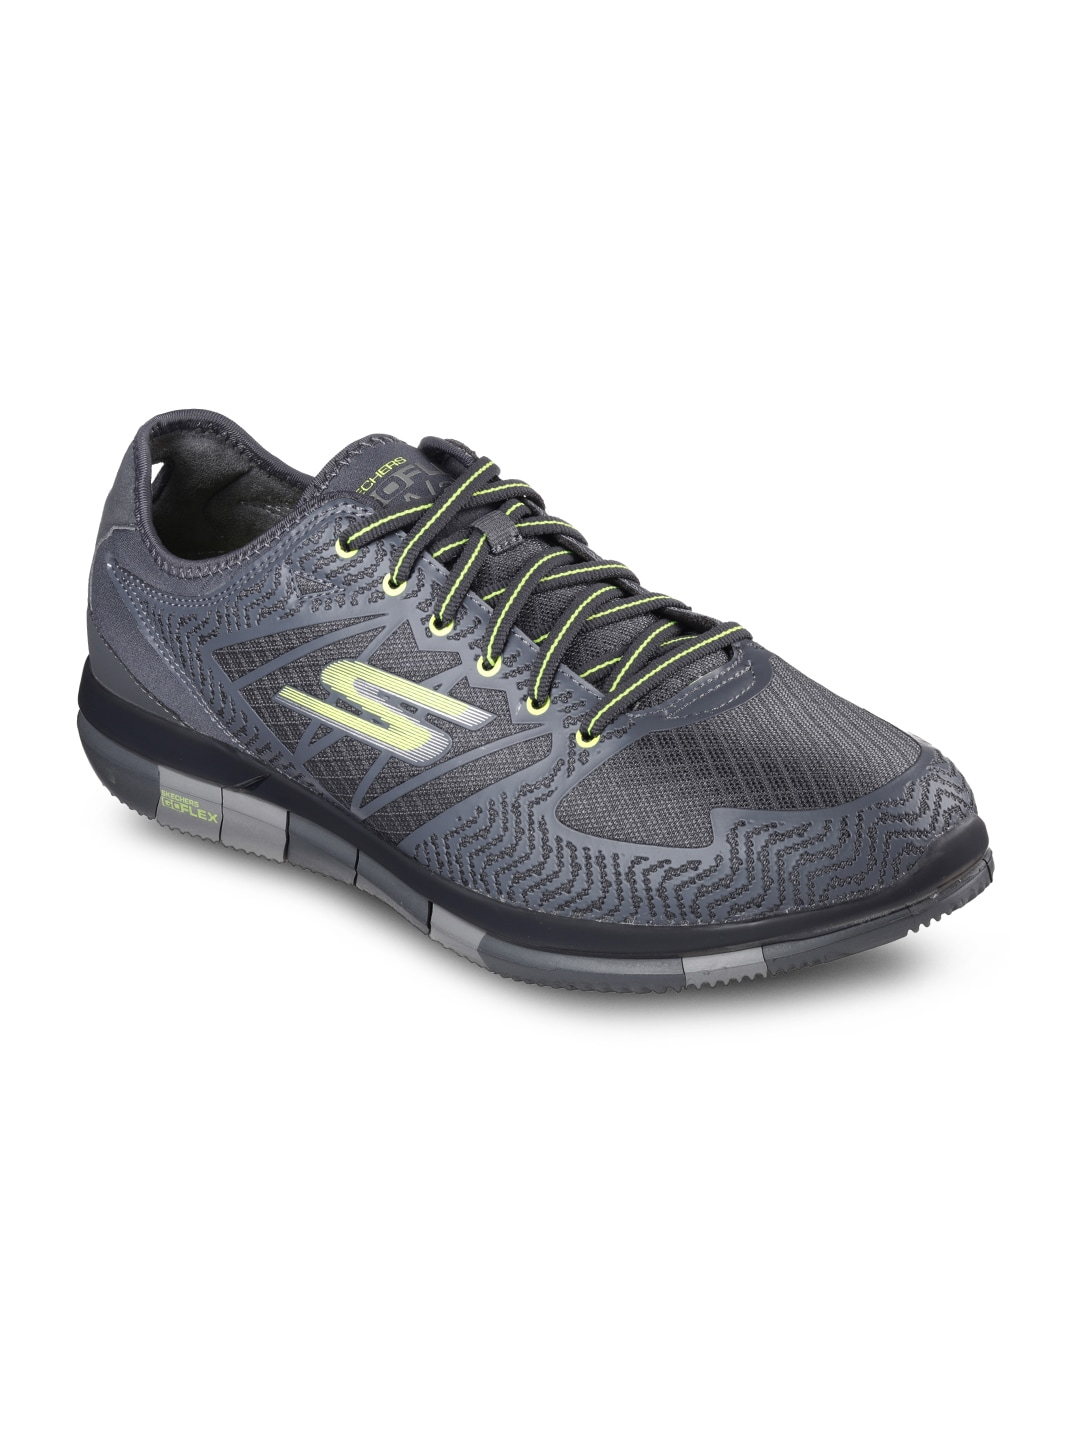 Free shipping! Find a great selection of SKECHERS shoes for women and kids at Nordstrom,+ followers on Twitter.